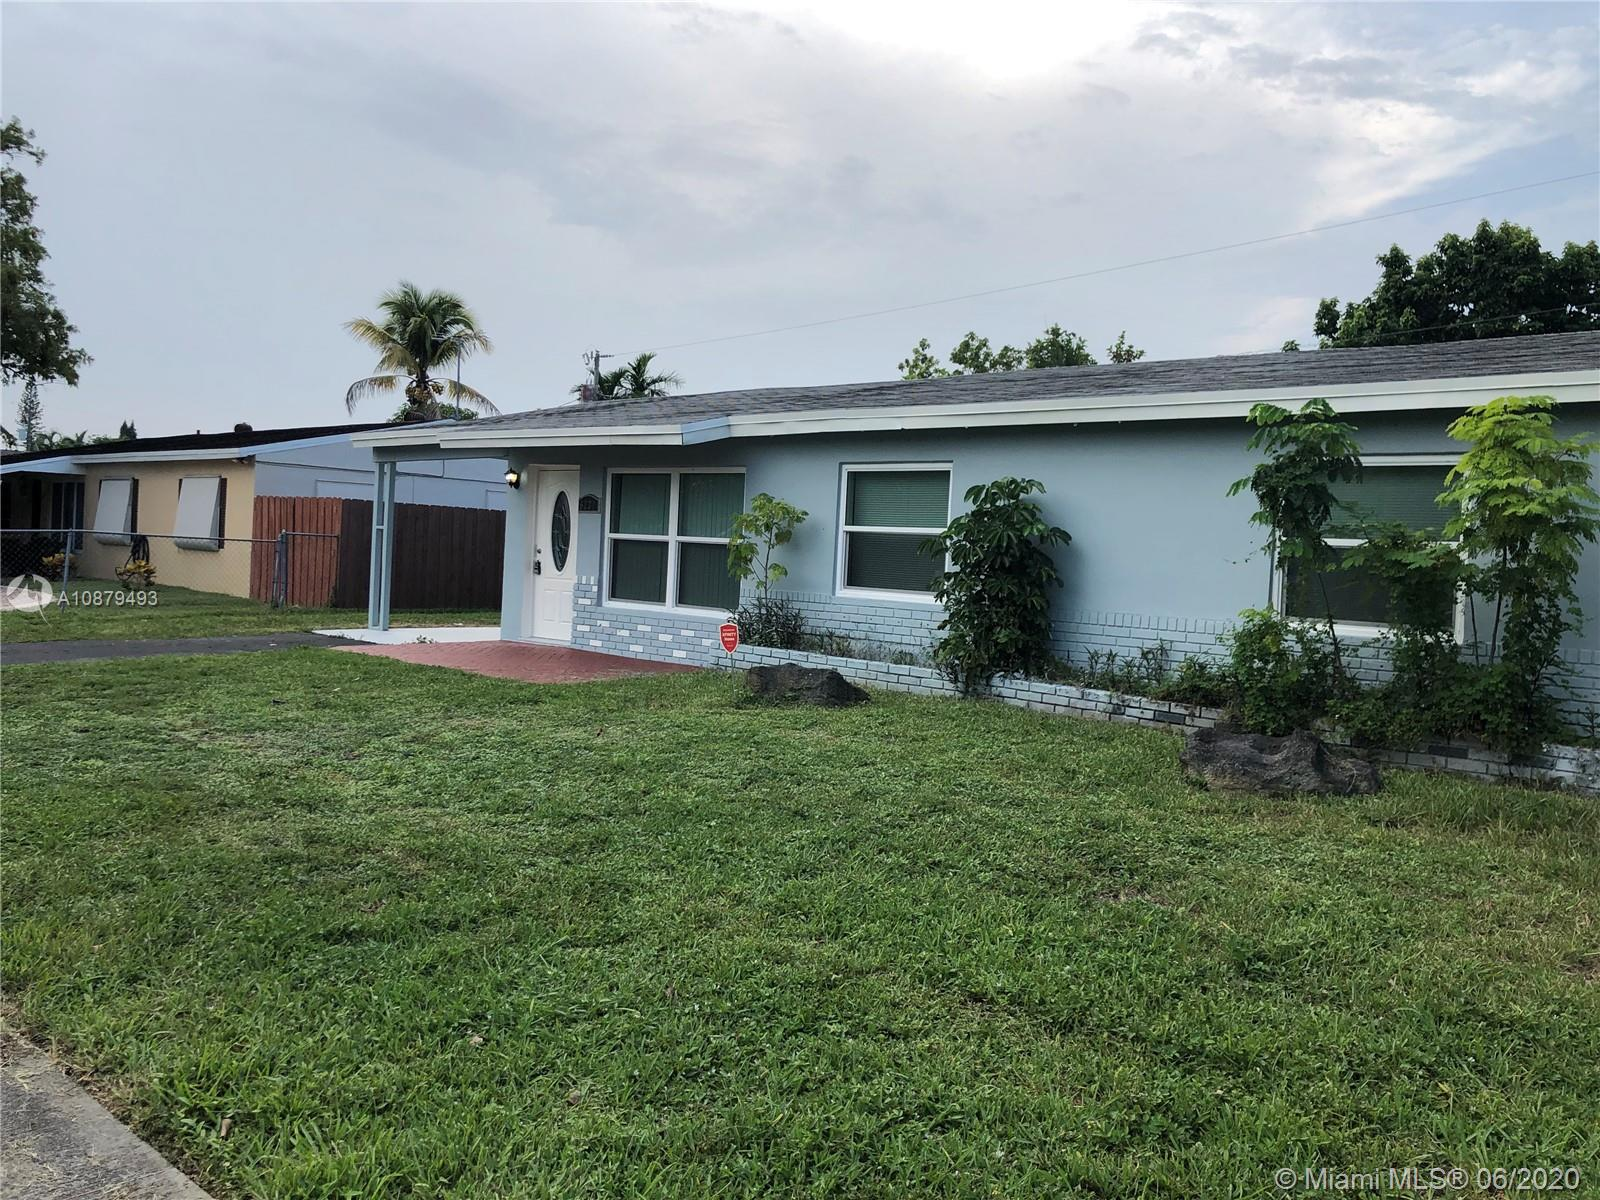 CALLING ALL INVESTORS. Beautifully updated 3 bedroom 2 bath single family home with a bonus quarters. Enjoy this great property as a cash-flow producer, or have it as your primary residency with a multi purpose quarters.See brokers remarks.